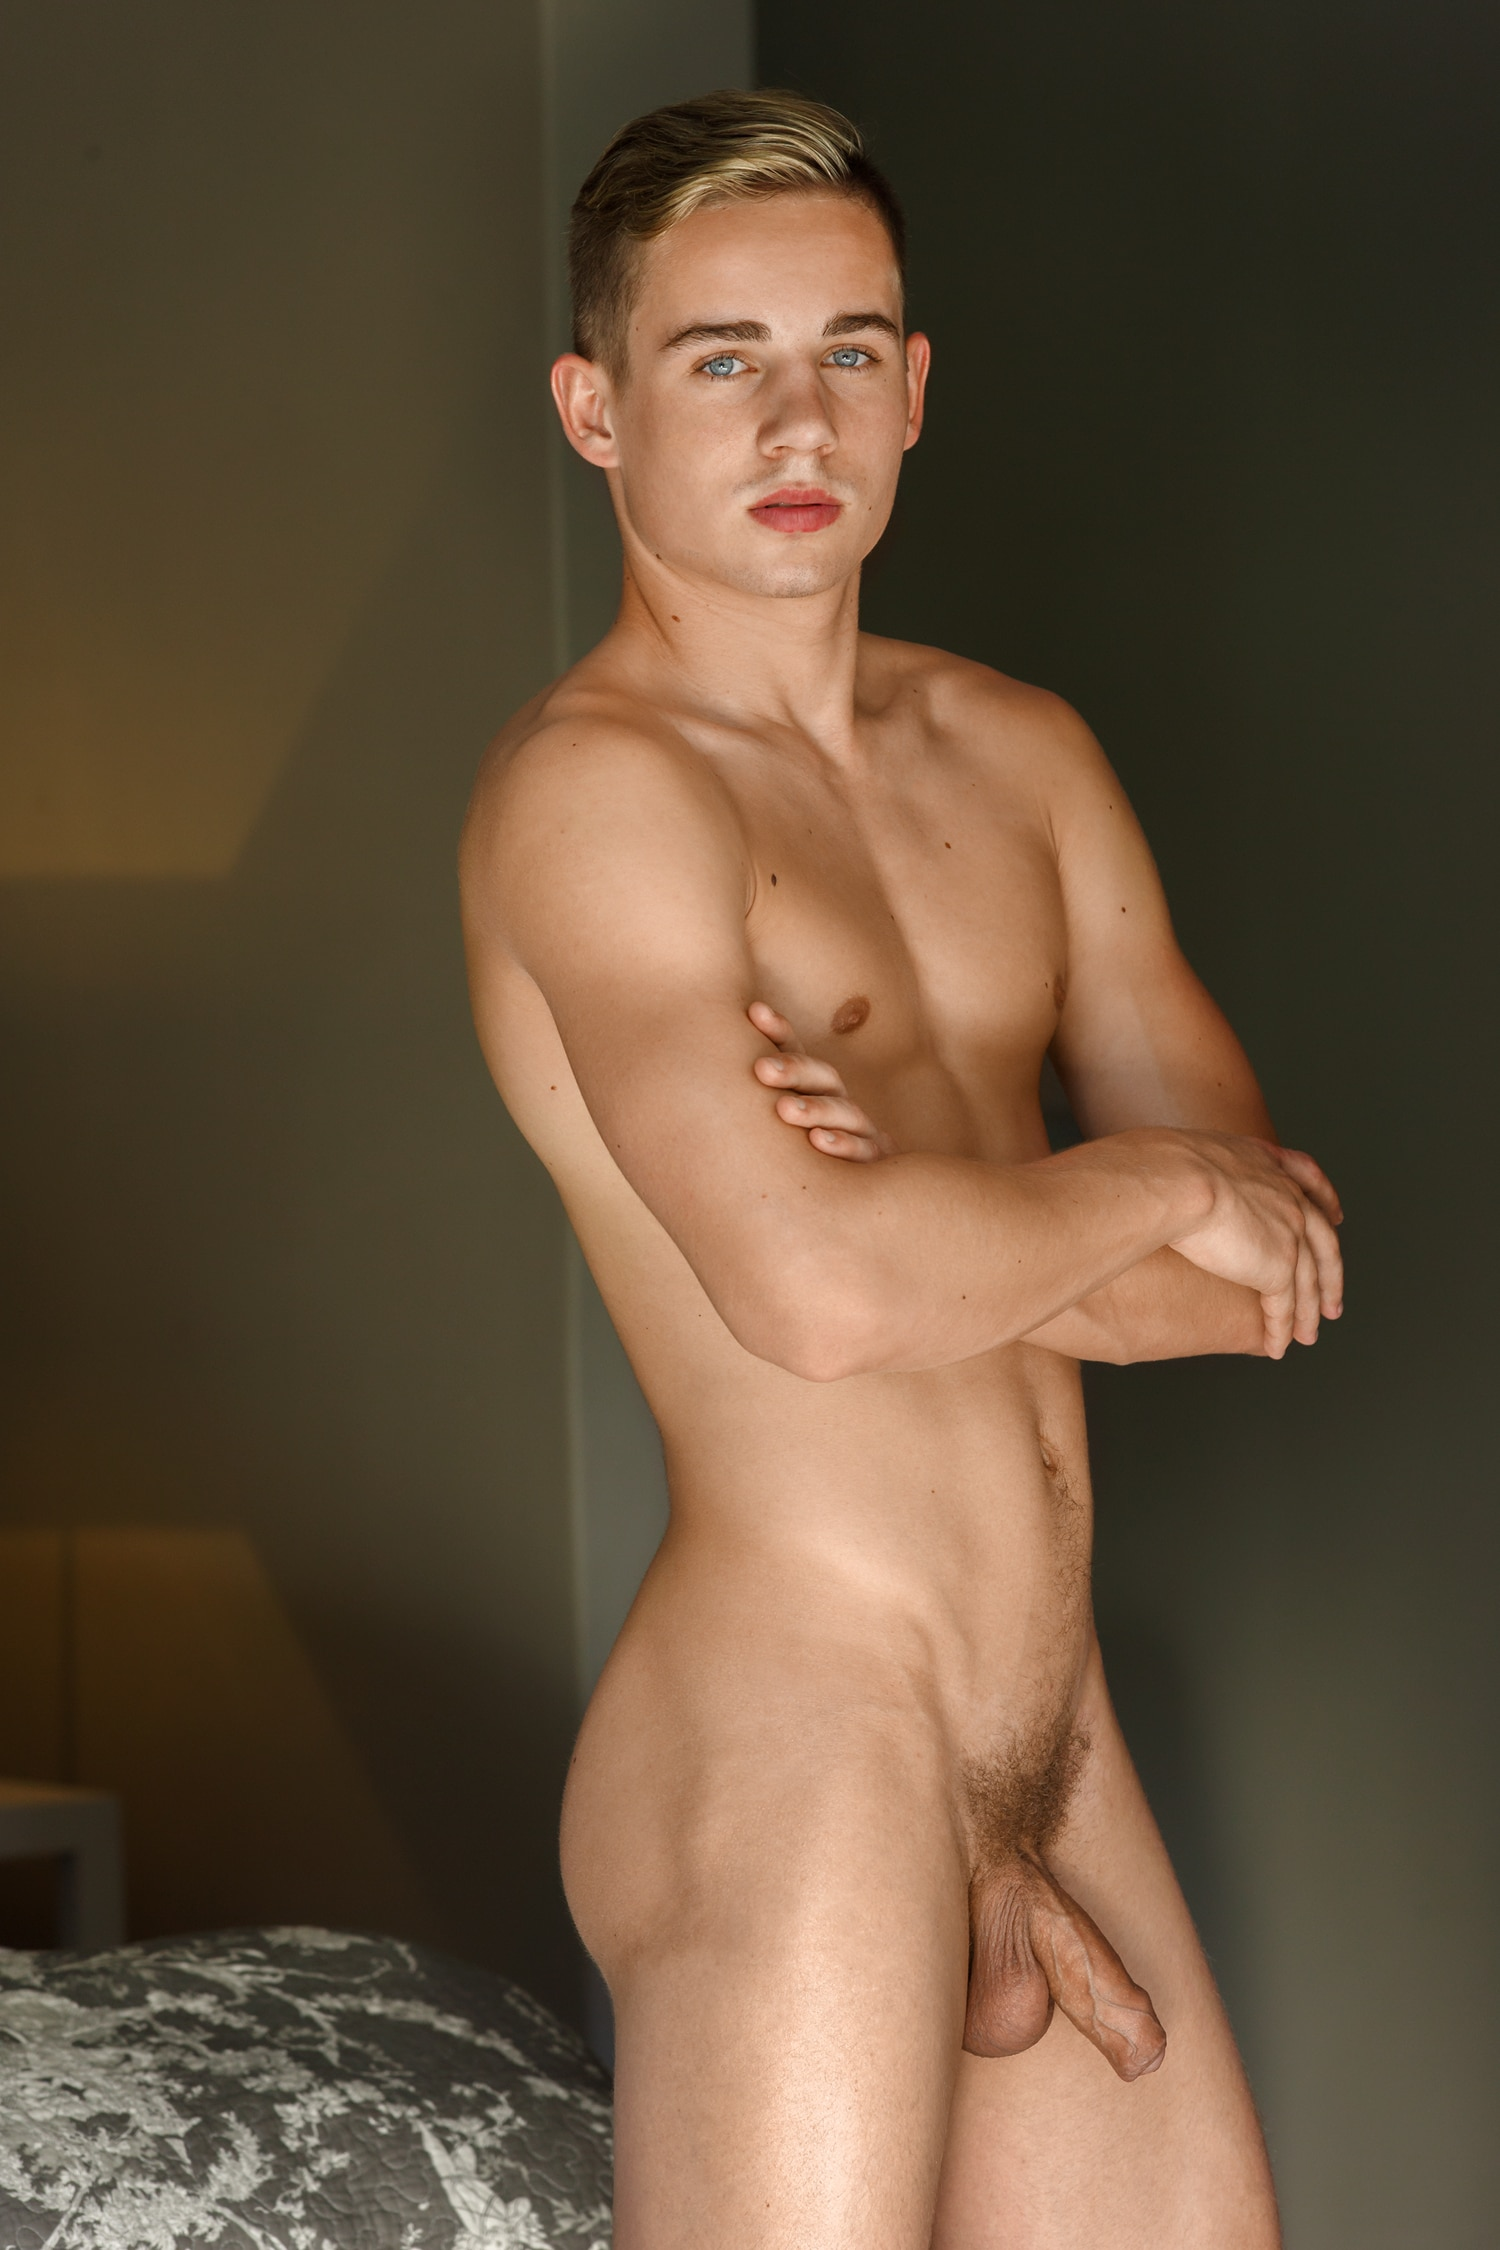 Sexy nude boy with a soft cock - Gay Porn Rules